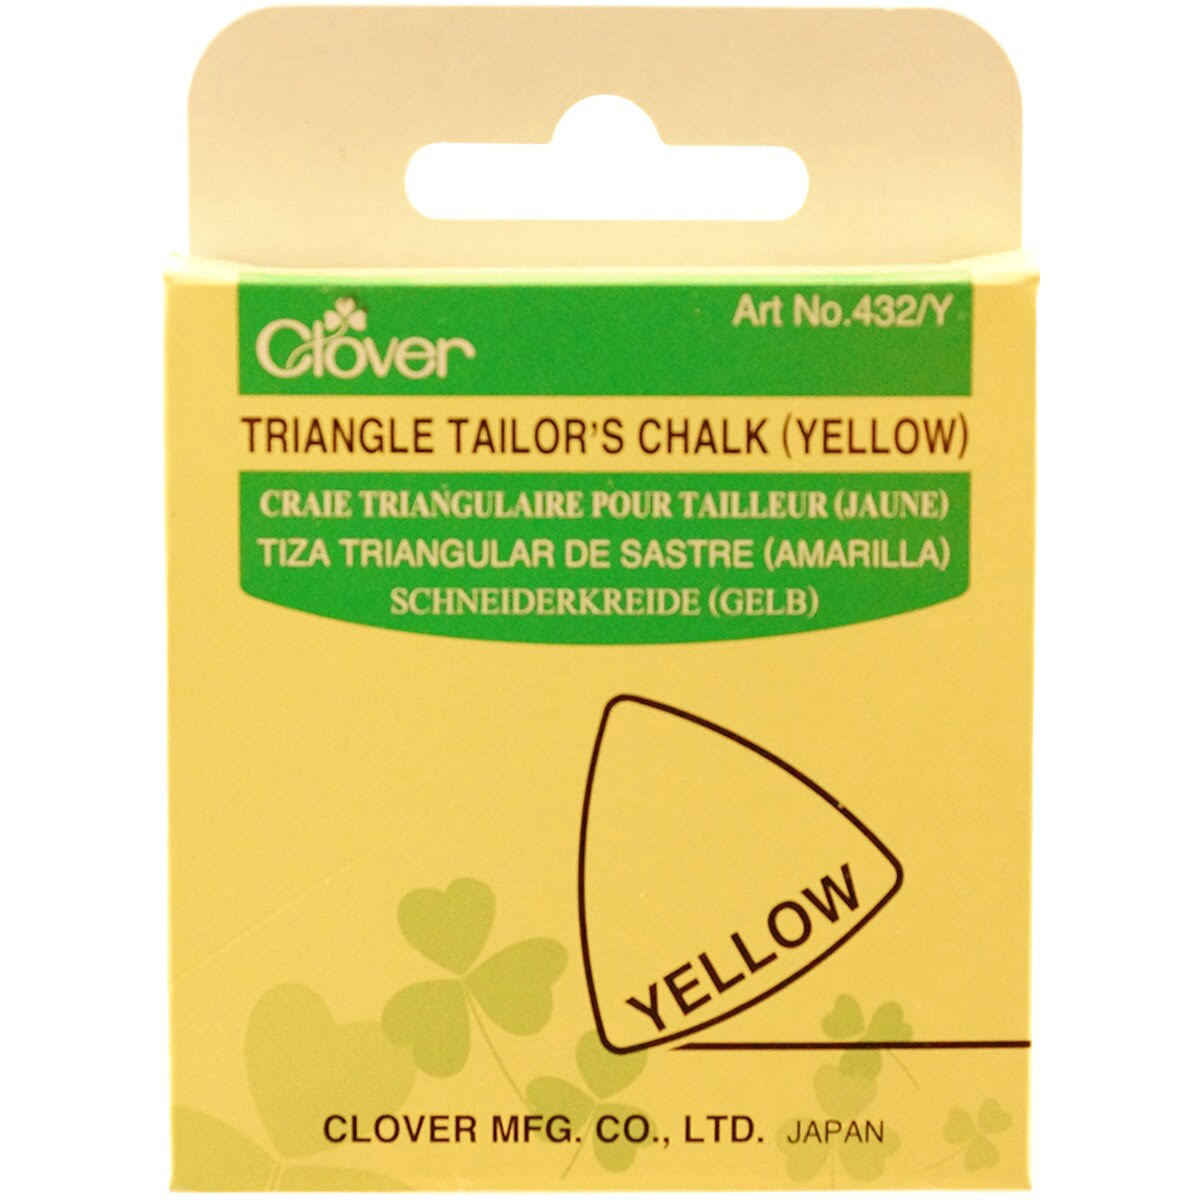 Clover Triangle Tailors Chalk - Yellow